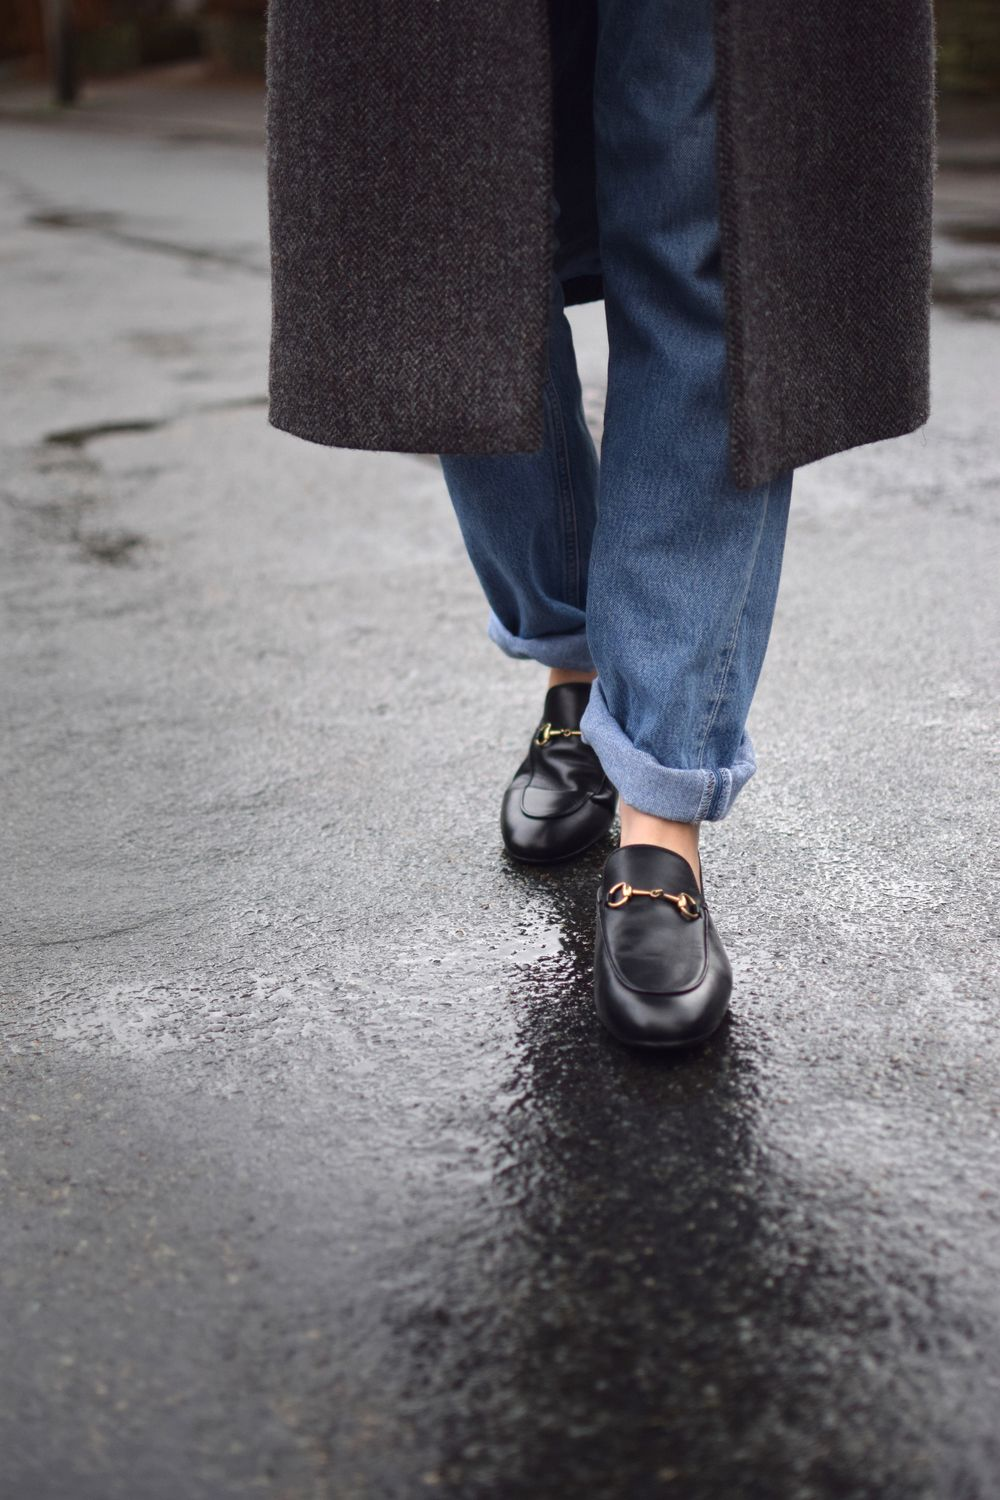 Gucci slipper, Gucci loafers outfit